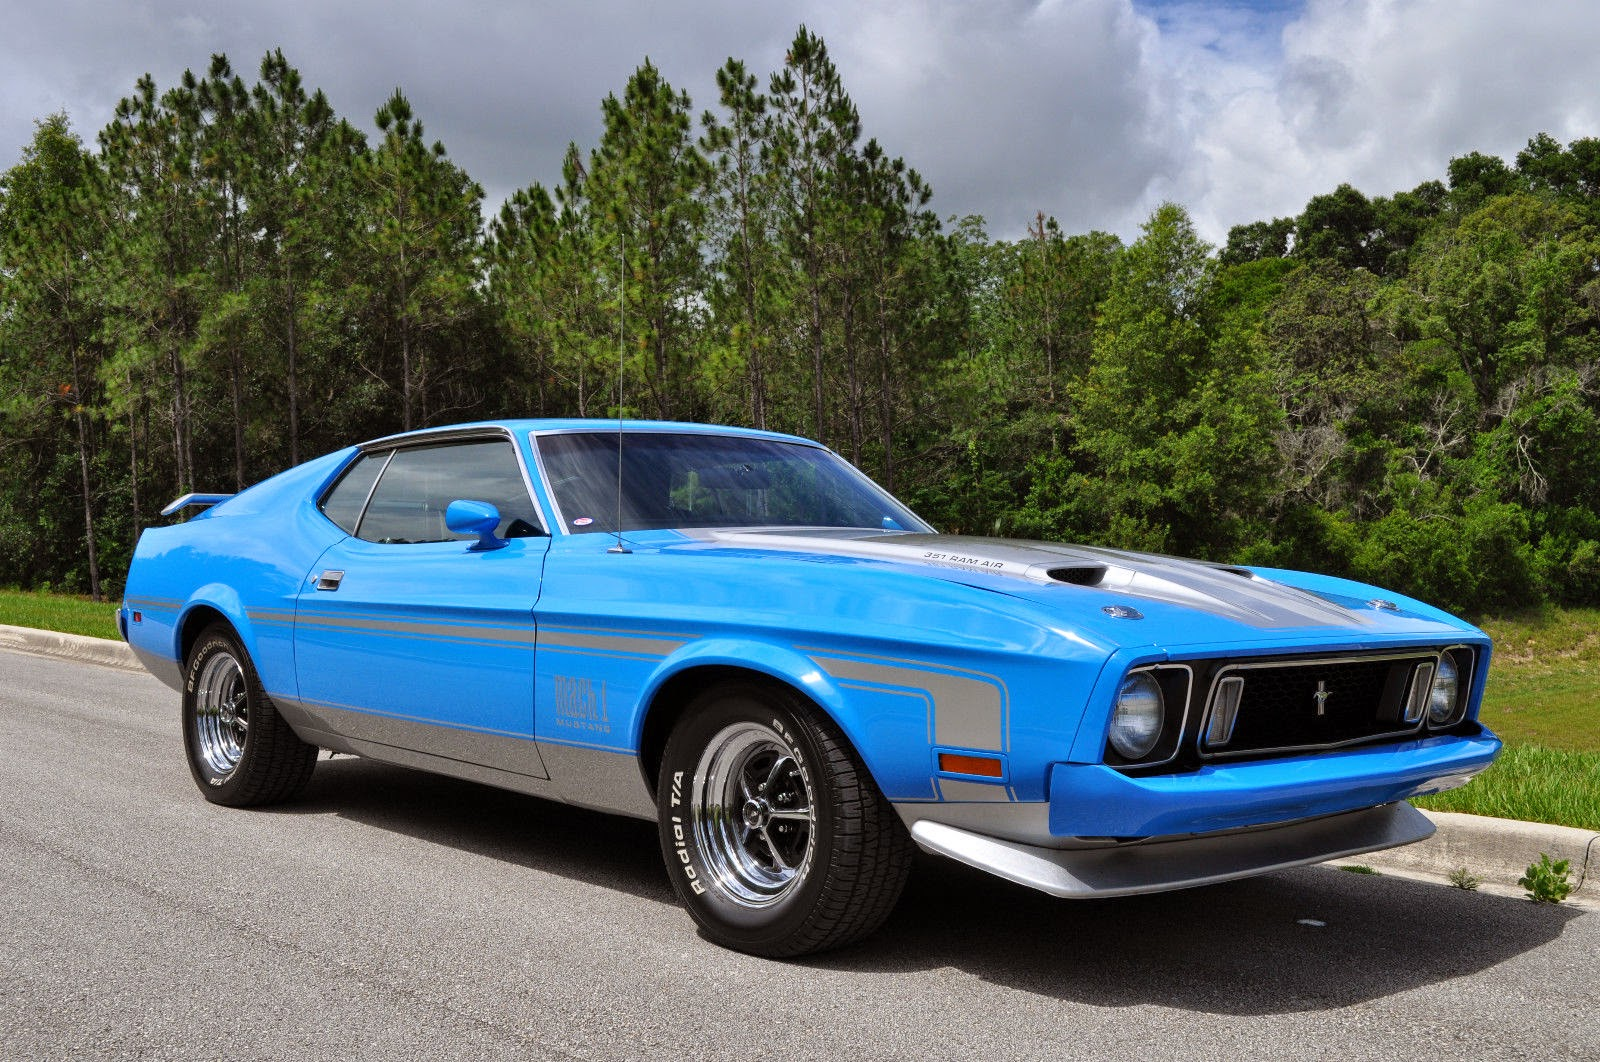 1973 Ford Mustang Mach 1 Q Code  For Sale American Muscle Cars